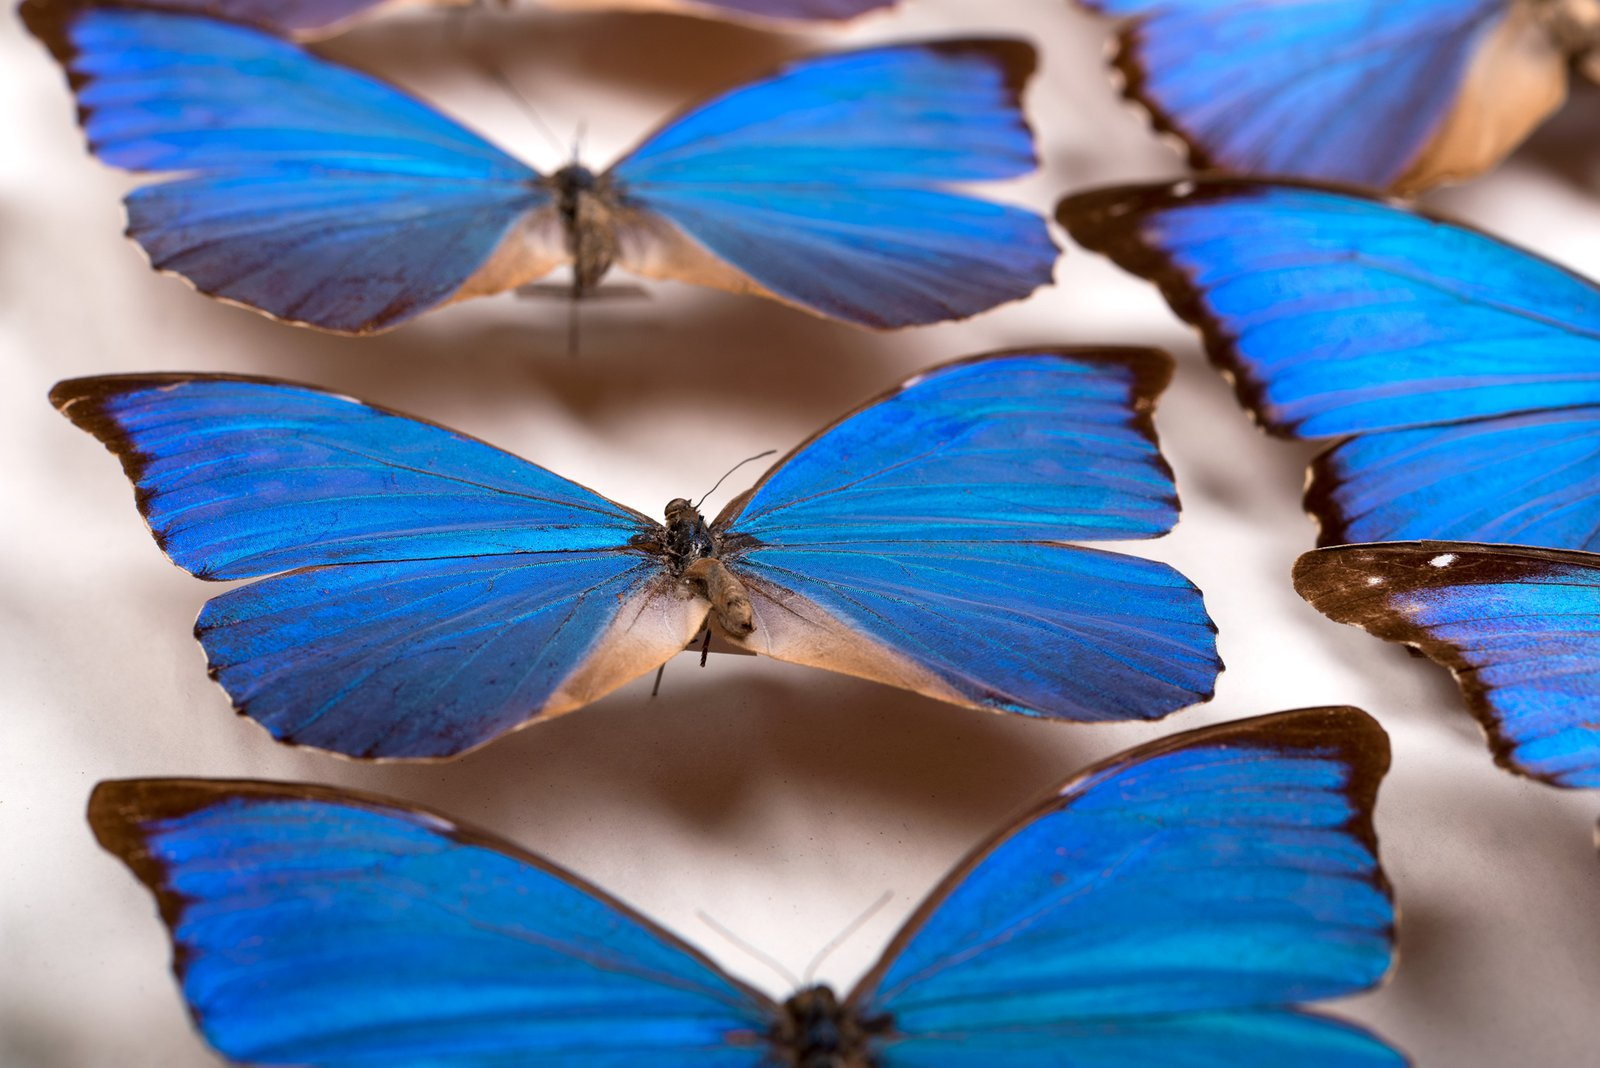 Lamond Collection Drawer, Morpho spp. (Nymphalidae)